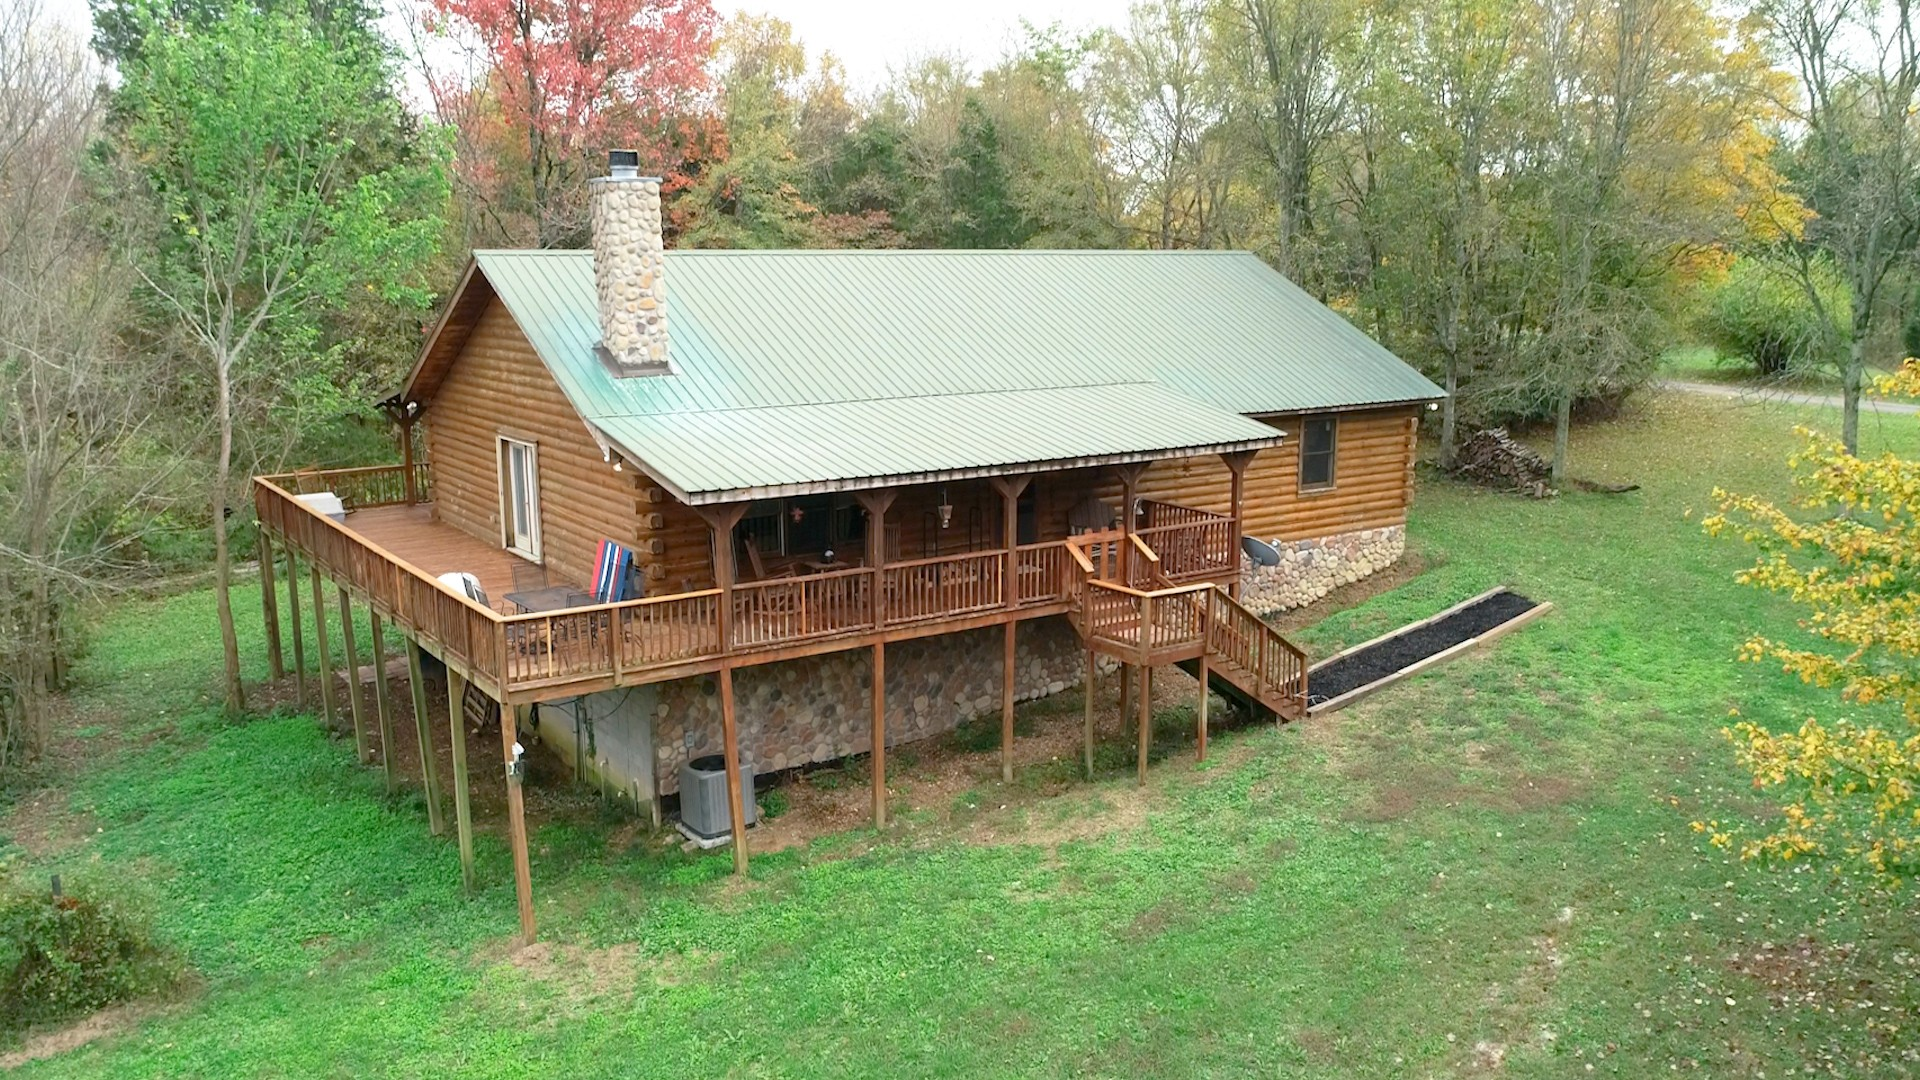 Private Oasis on 5+ acres w/just minutes to I-65 & I-840. Custom built log home. Enjoy beautiful sunsets from your wrap around rocking chair covered deck. Lots of room for your RV & boat parking. Home includes wood burning stone fireplace with vaulted ceiling, spacious rooms.  Main floor has primary bedroom suite, 2 spacious bedrooms, 2 baths, & a large country kitchen. Basement level has large bedroom with bath, large den with electric fireplace, garage & storage. Located in Williamson County.